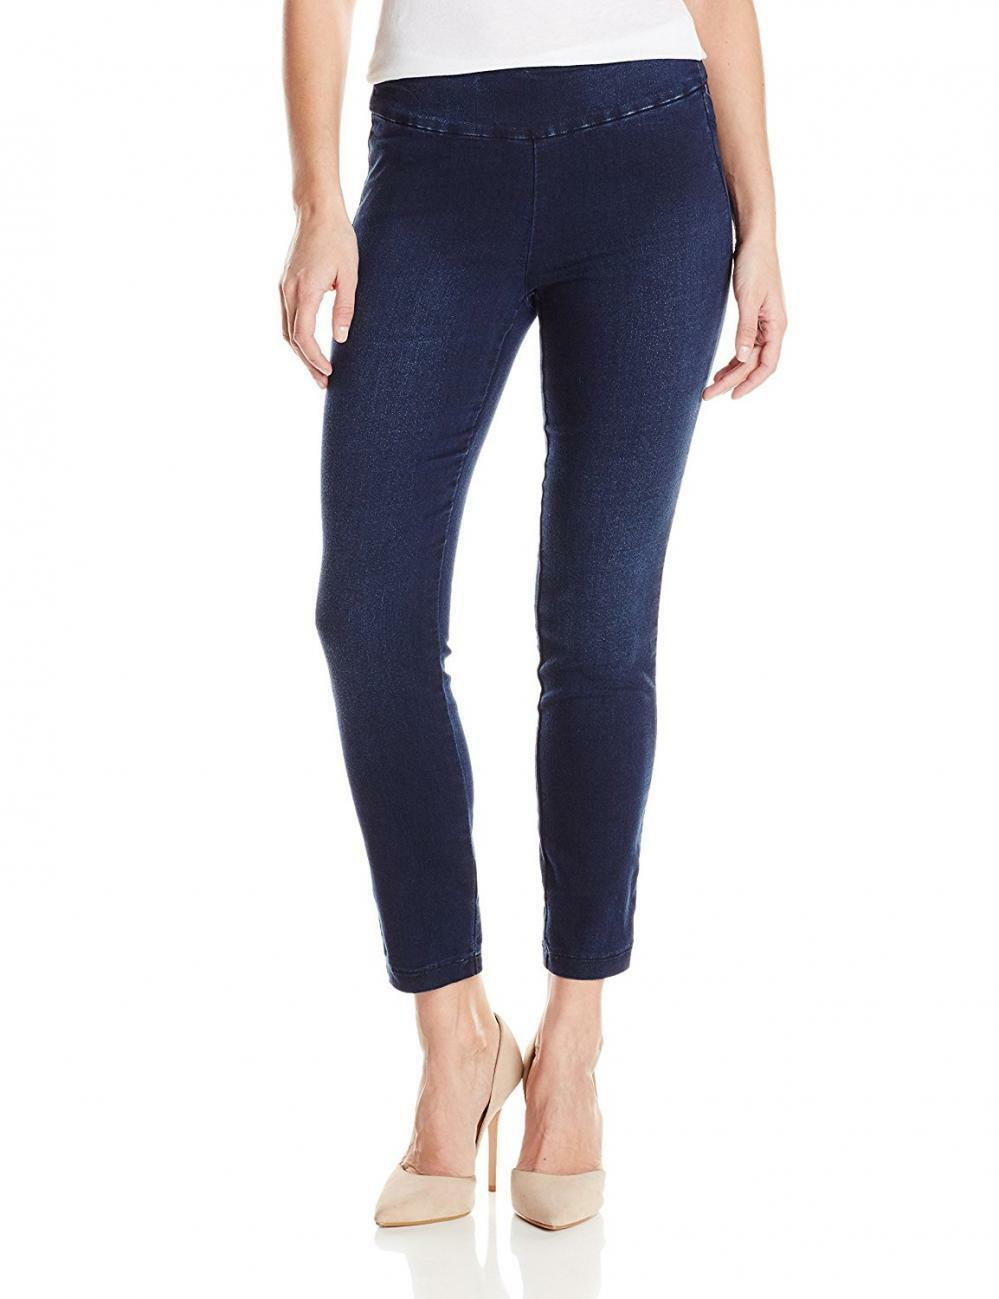 Miraclebody by Miraclesuit Women's Ashley 28 Inch Ankle Pull On Pant